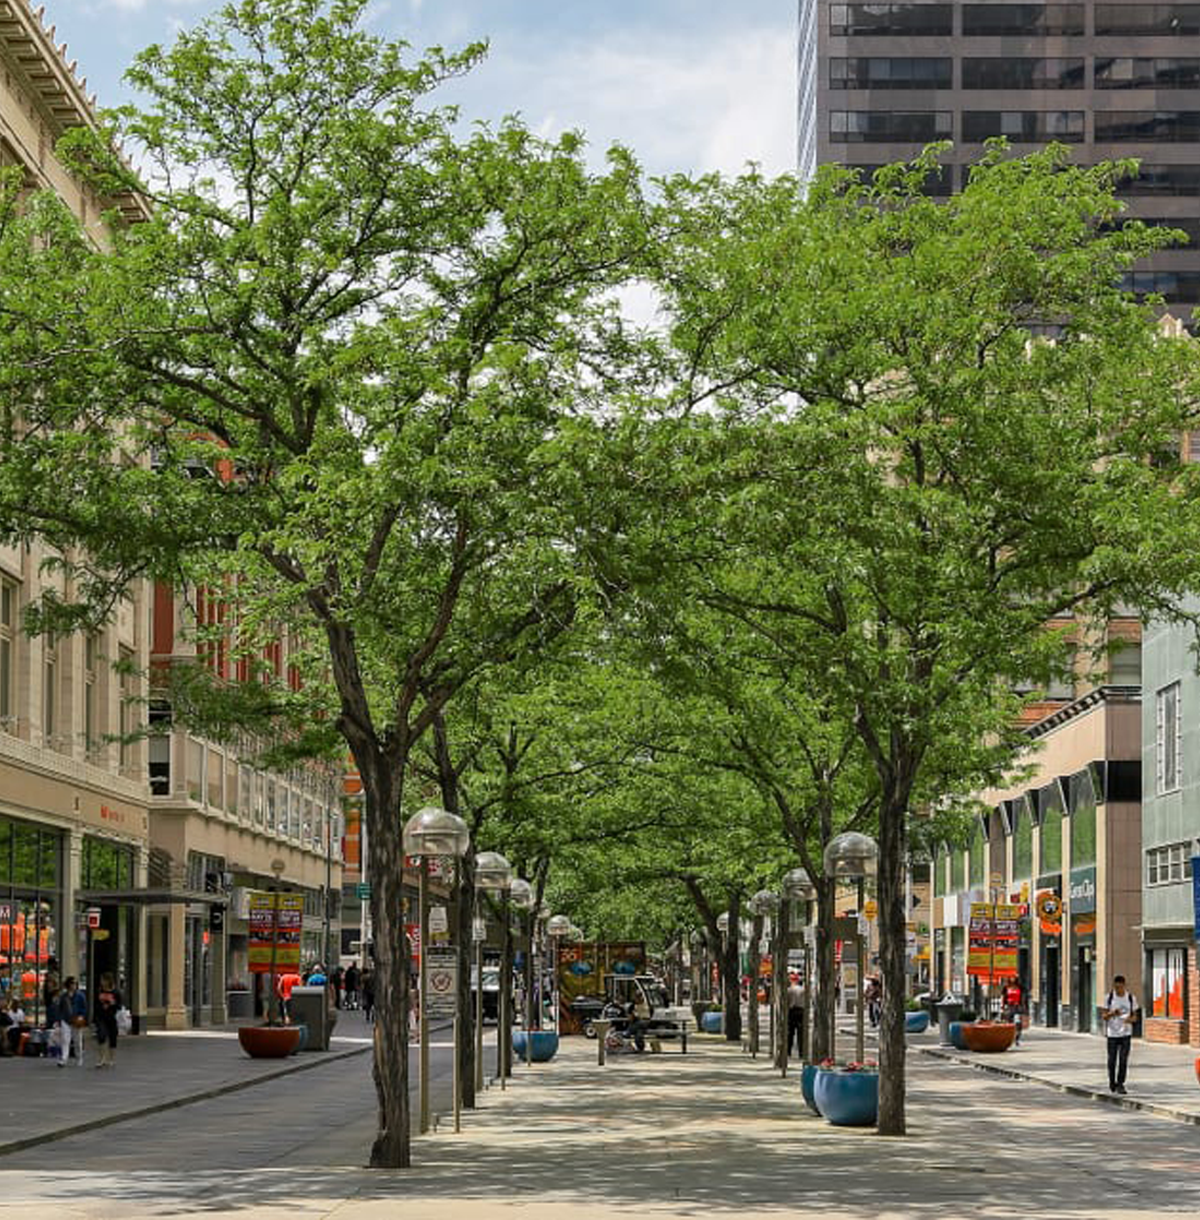 A pedestrian mall with trees and people between storefronts.